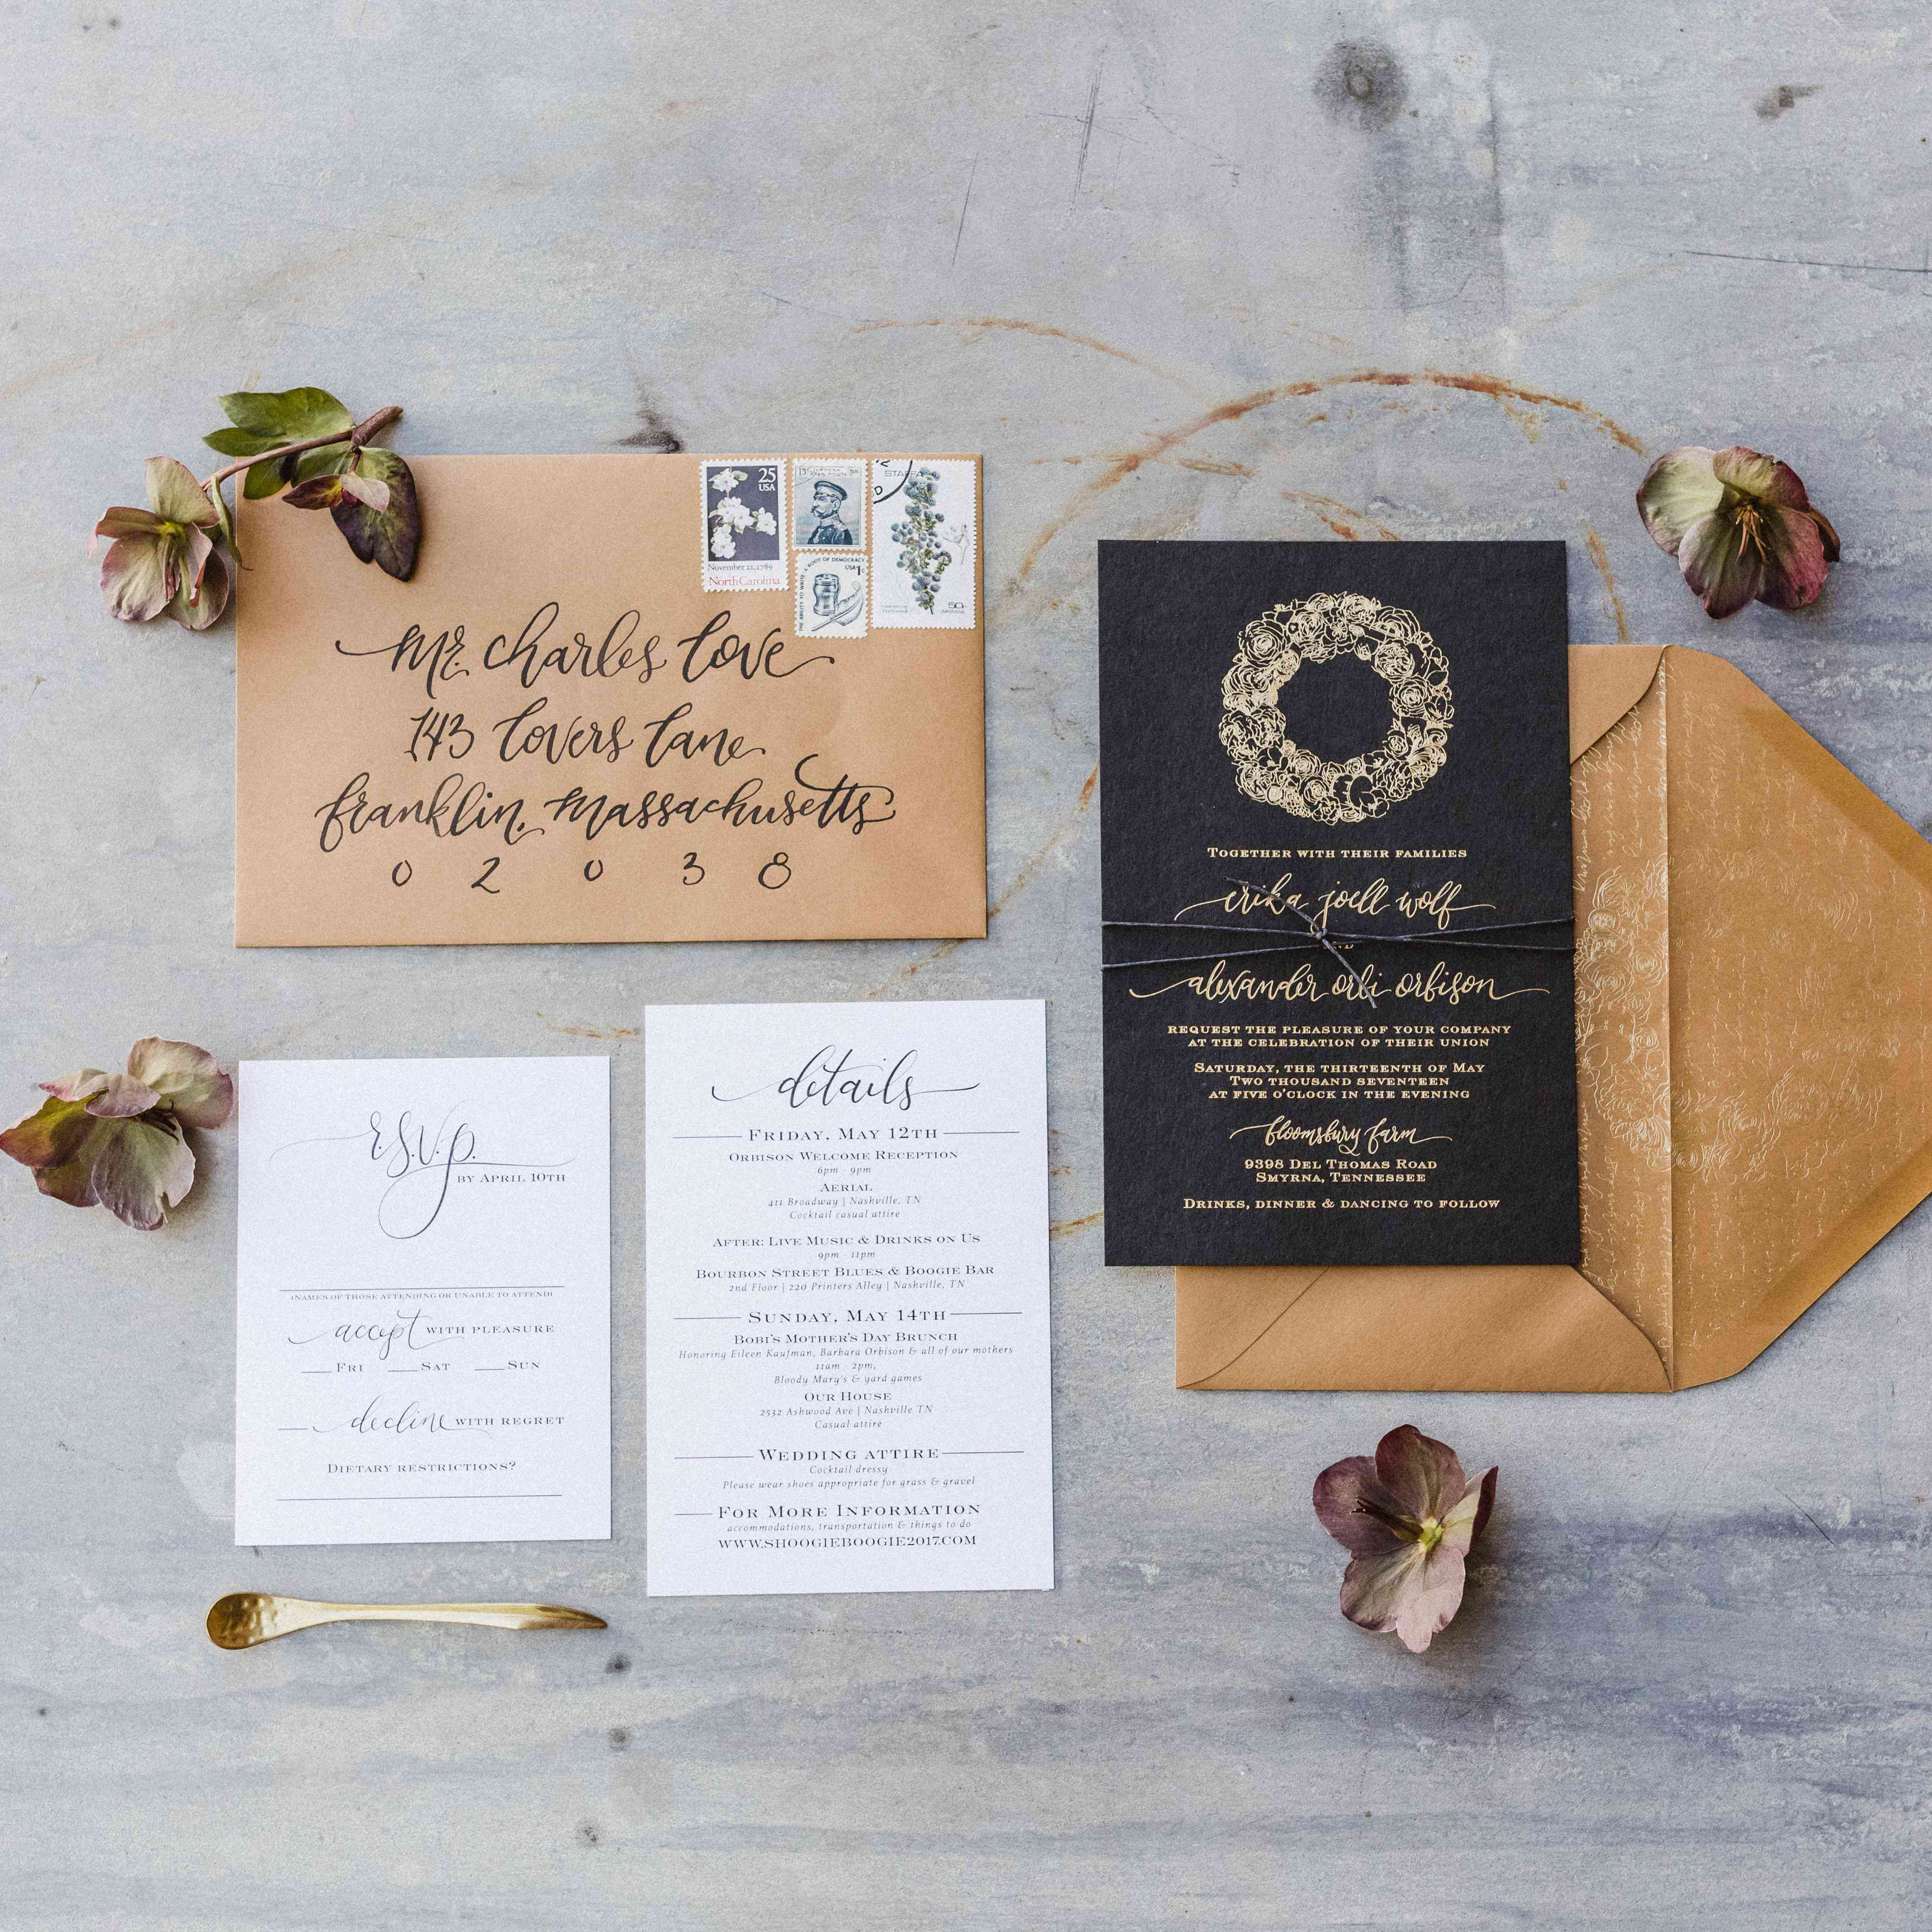 Story Guide To Wedding Invitation Wording: The Story Behind How To Traditionally Word Wedding Invitations